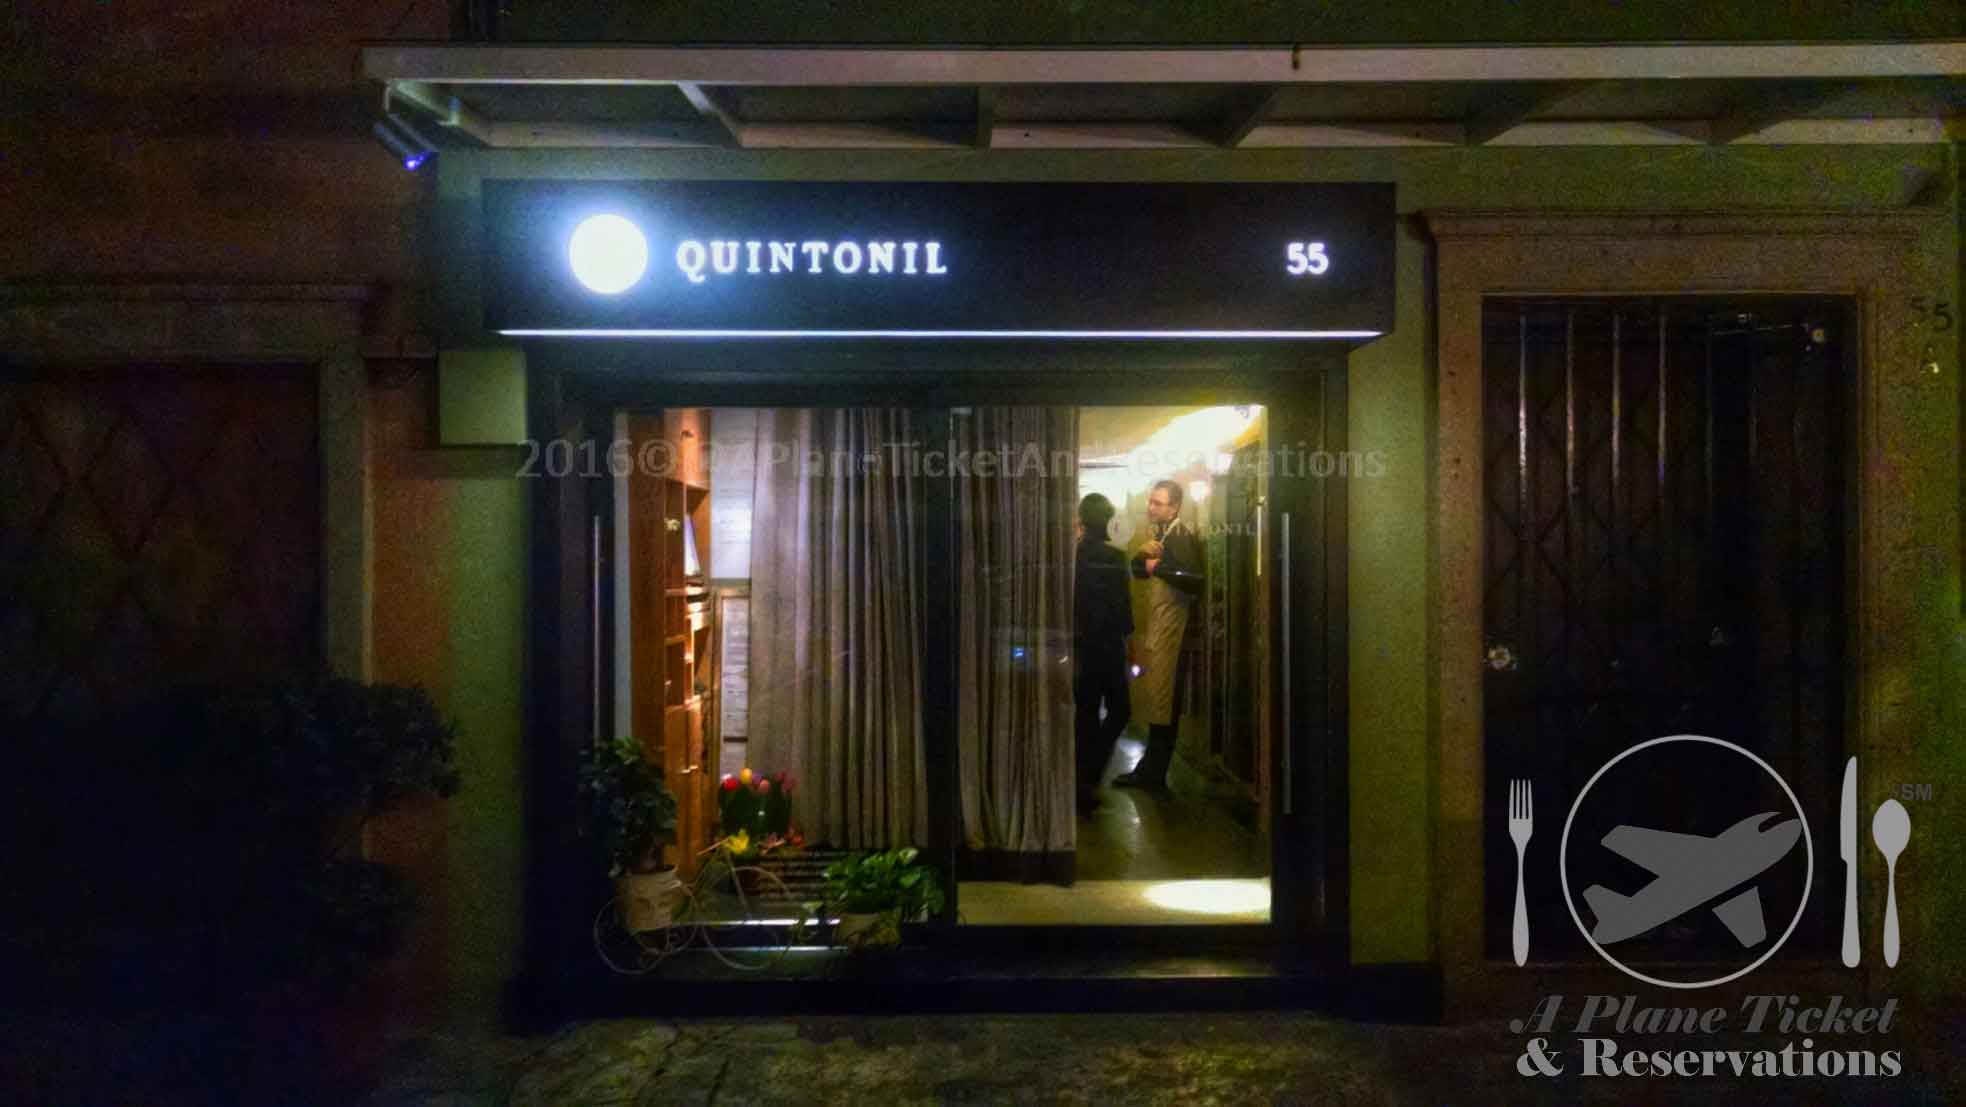 Quintonil Mexico City